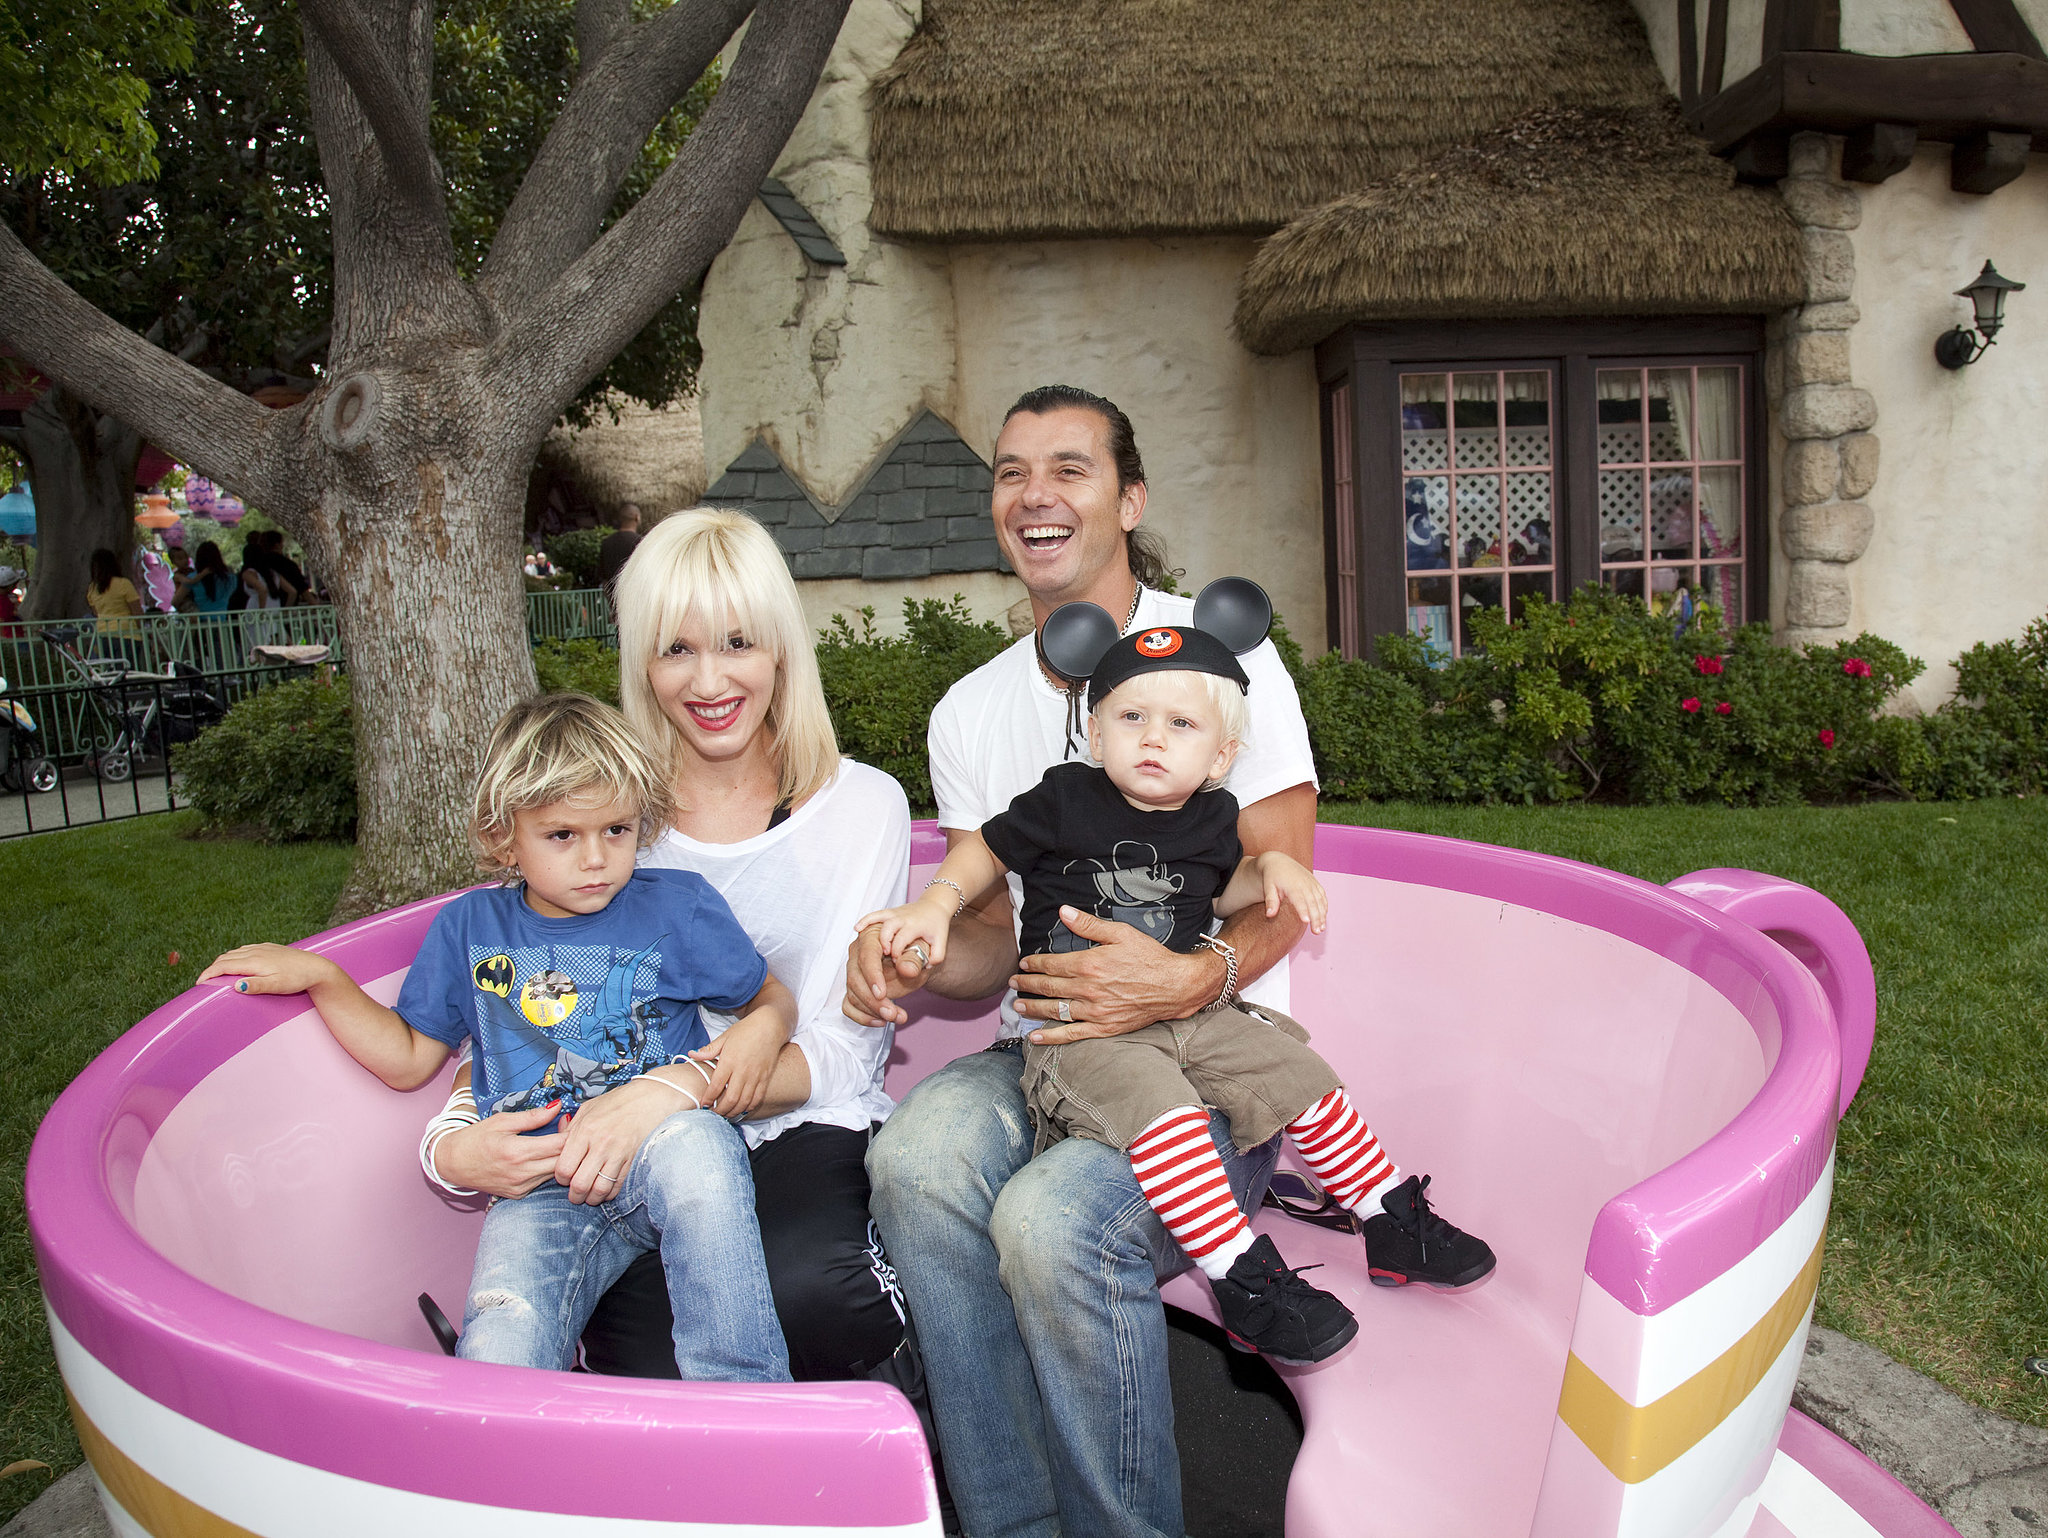 Gwen Stefani and Gavin Rossdale played around with their kids, Kingston and Zuma, at the park in July 2010.